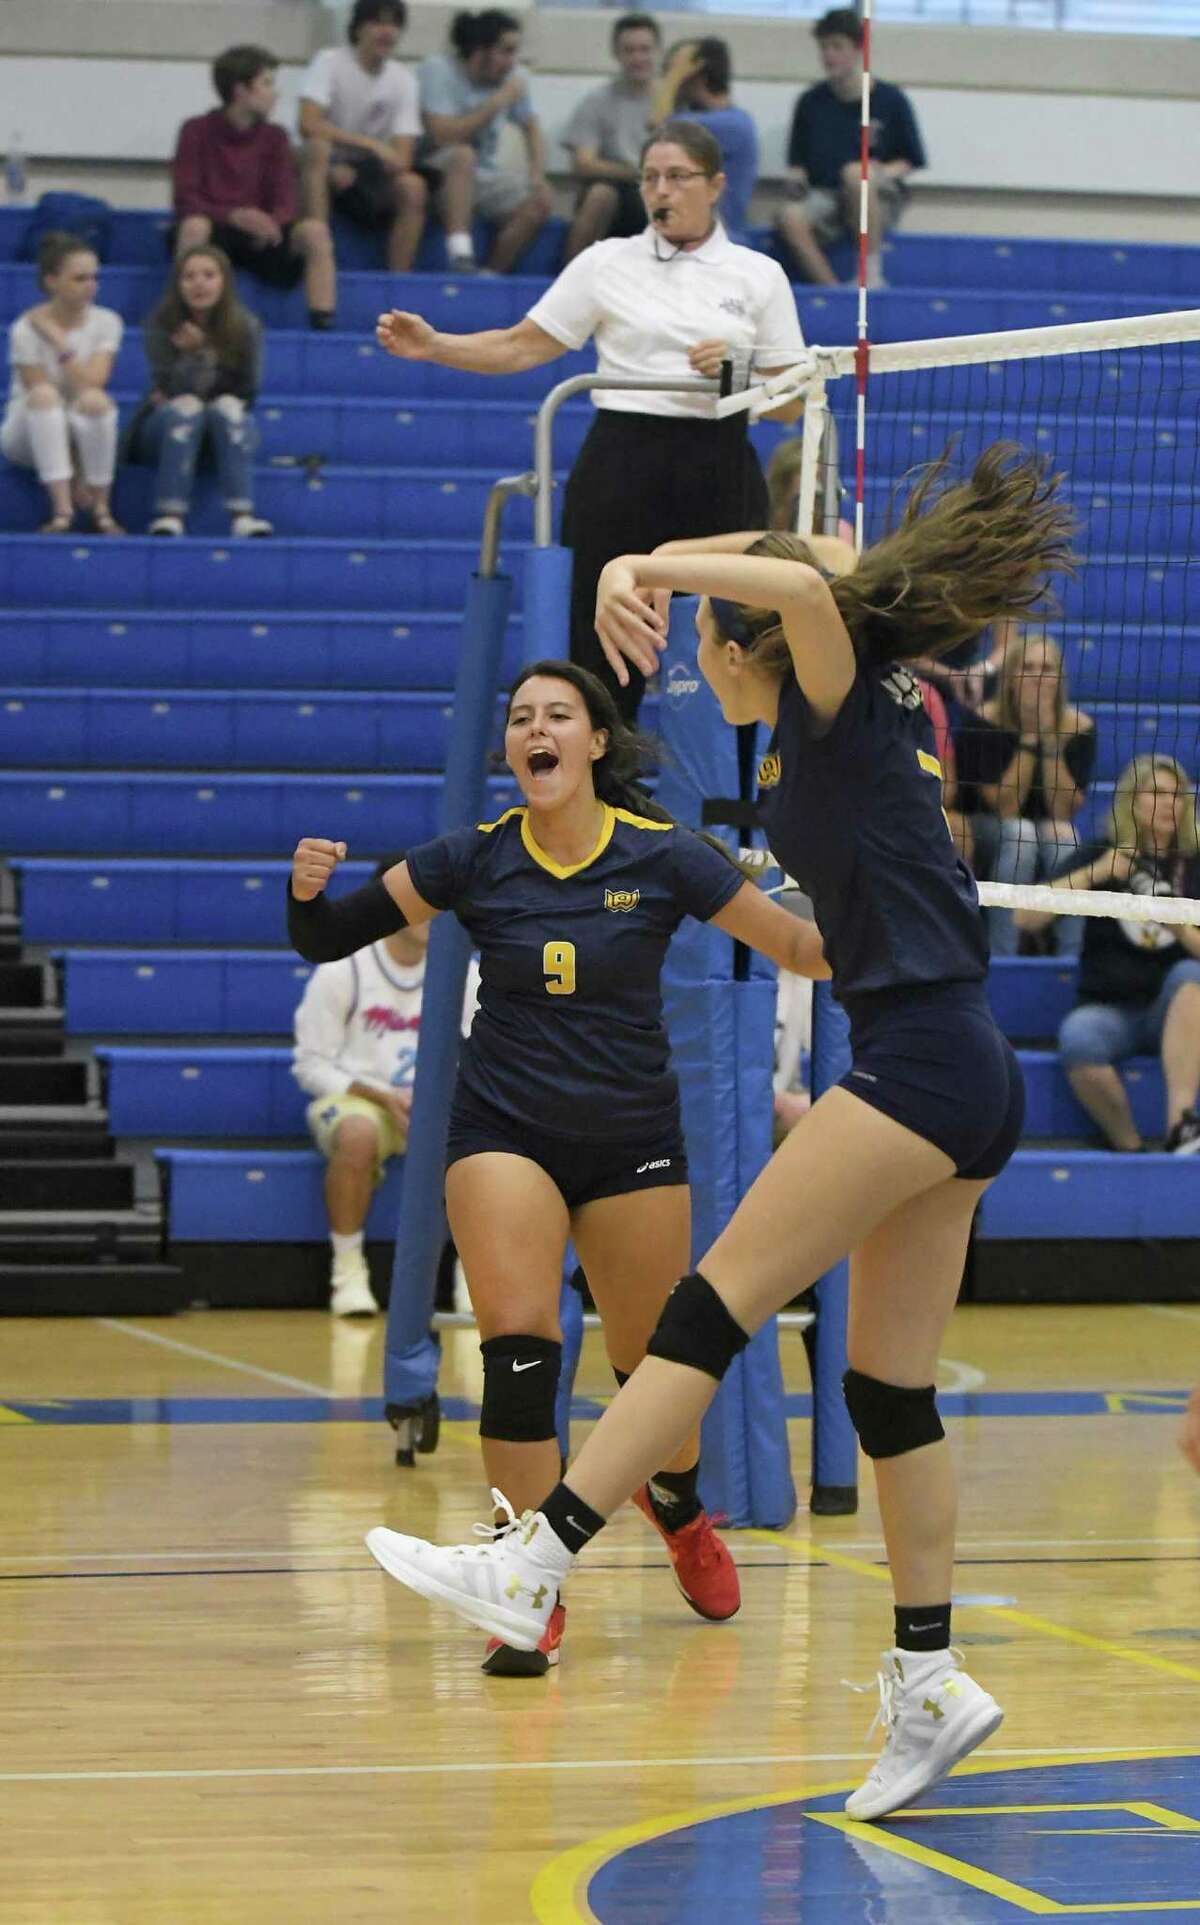 Woodstock Academy?'s Paula Hernandez, left, and Marissa Mayhew celebrate during the Woodstock Academy at Newtown High School girls volleyball game, Sept. 17, 2018.